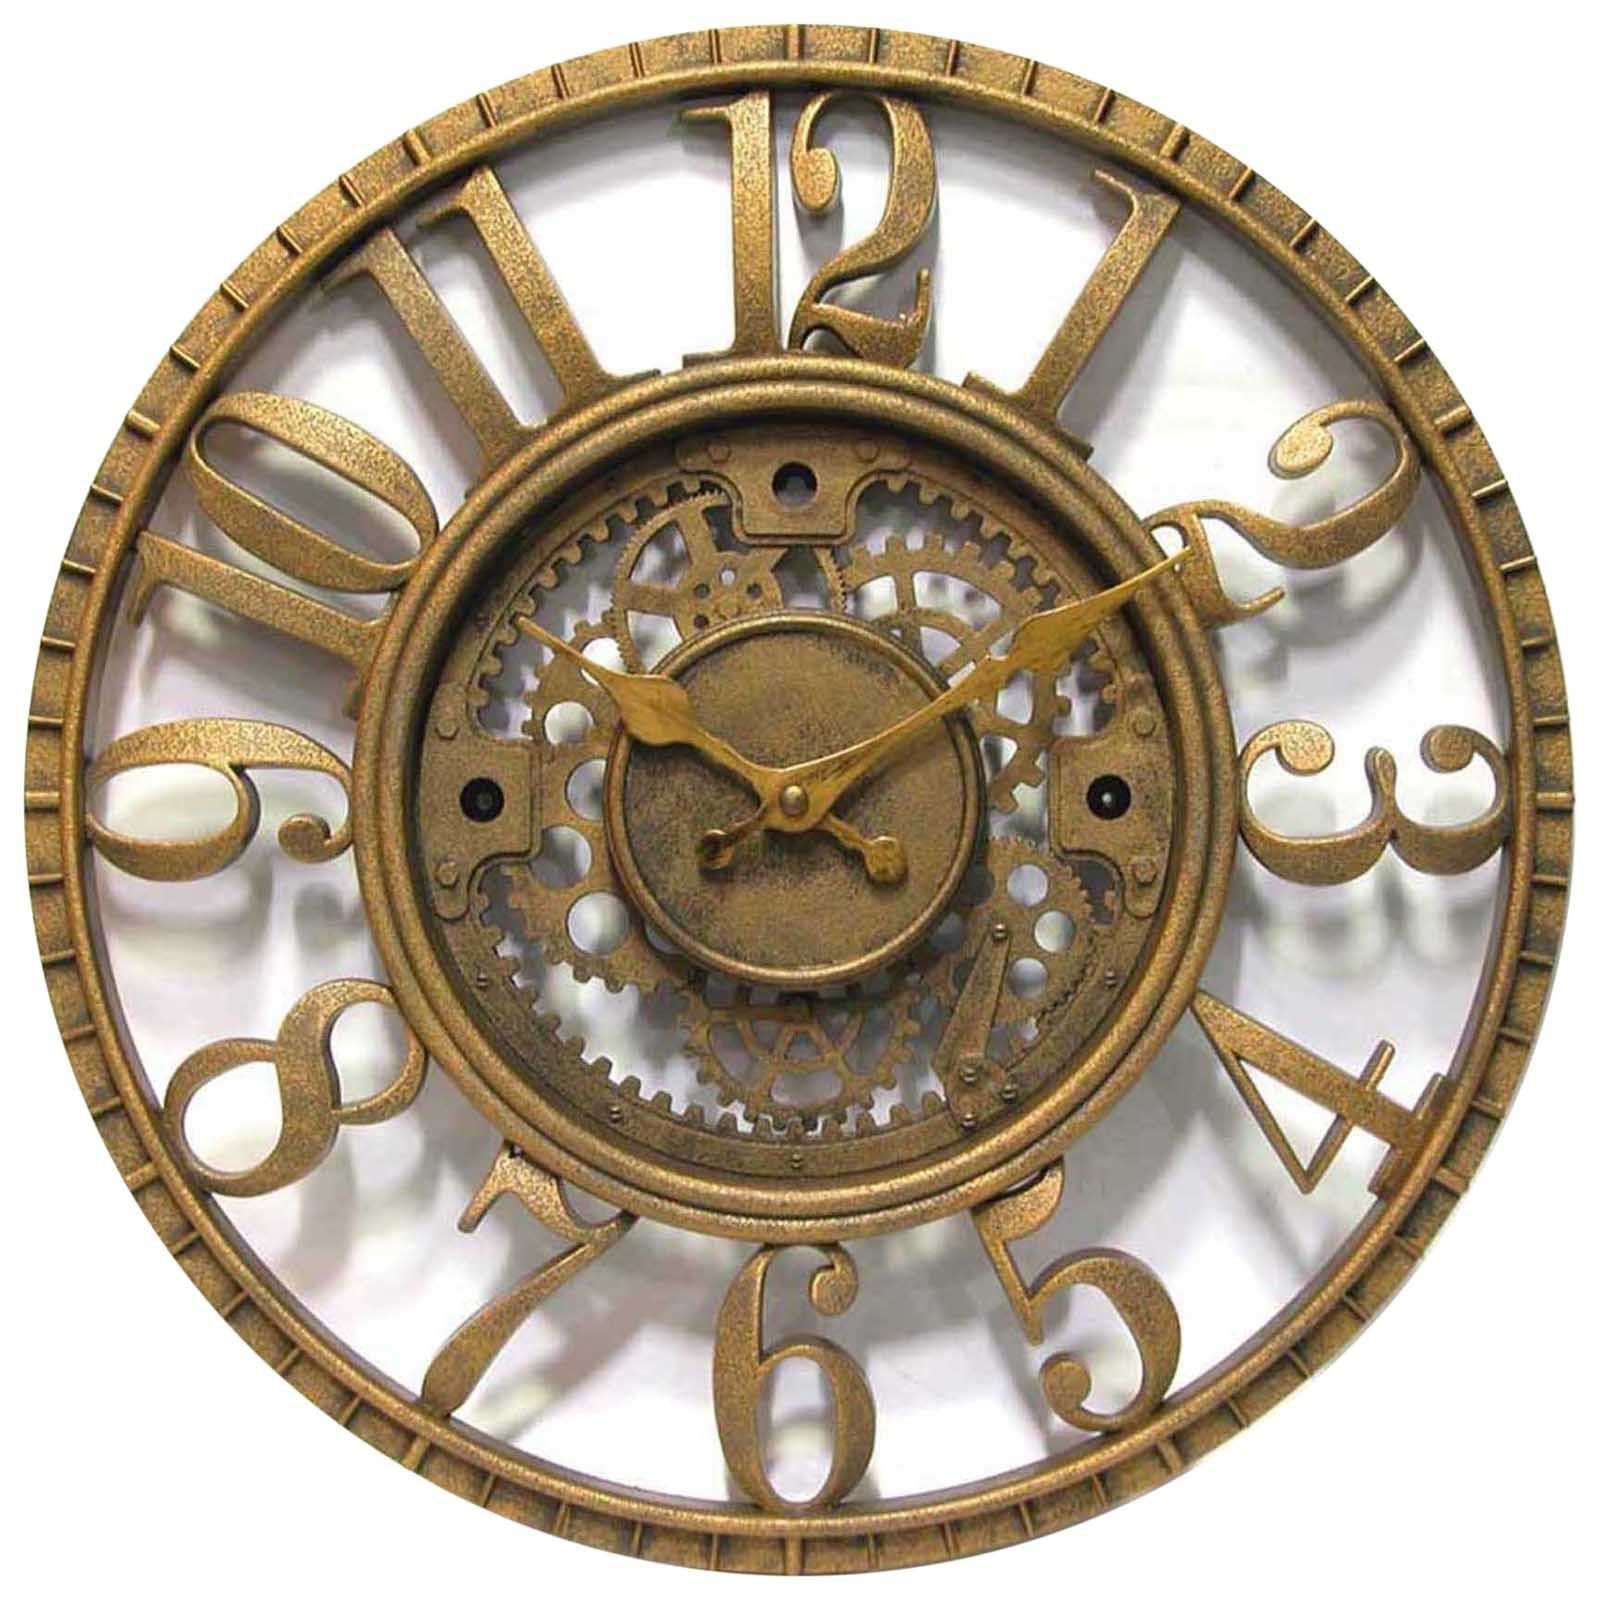 Wonderful Gears Wall Clock Time Open Dial Gold Finish Office Home Decor Antique Style